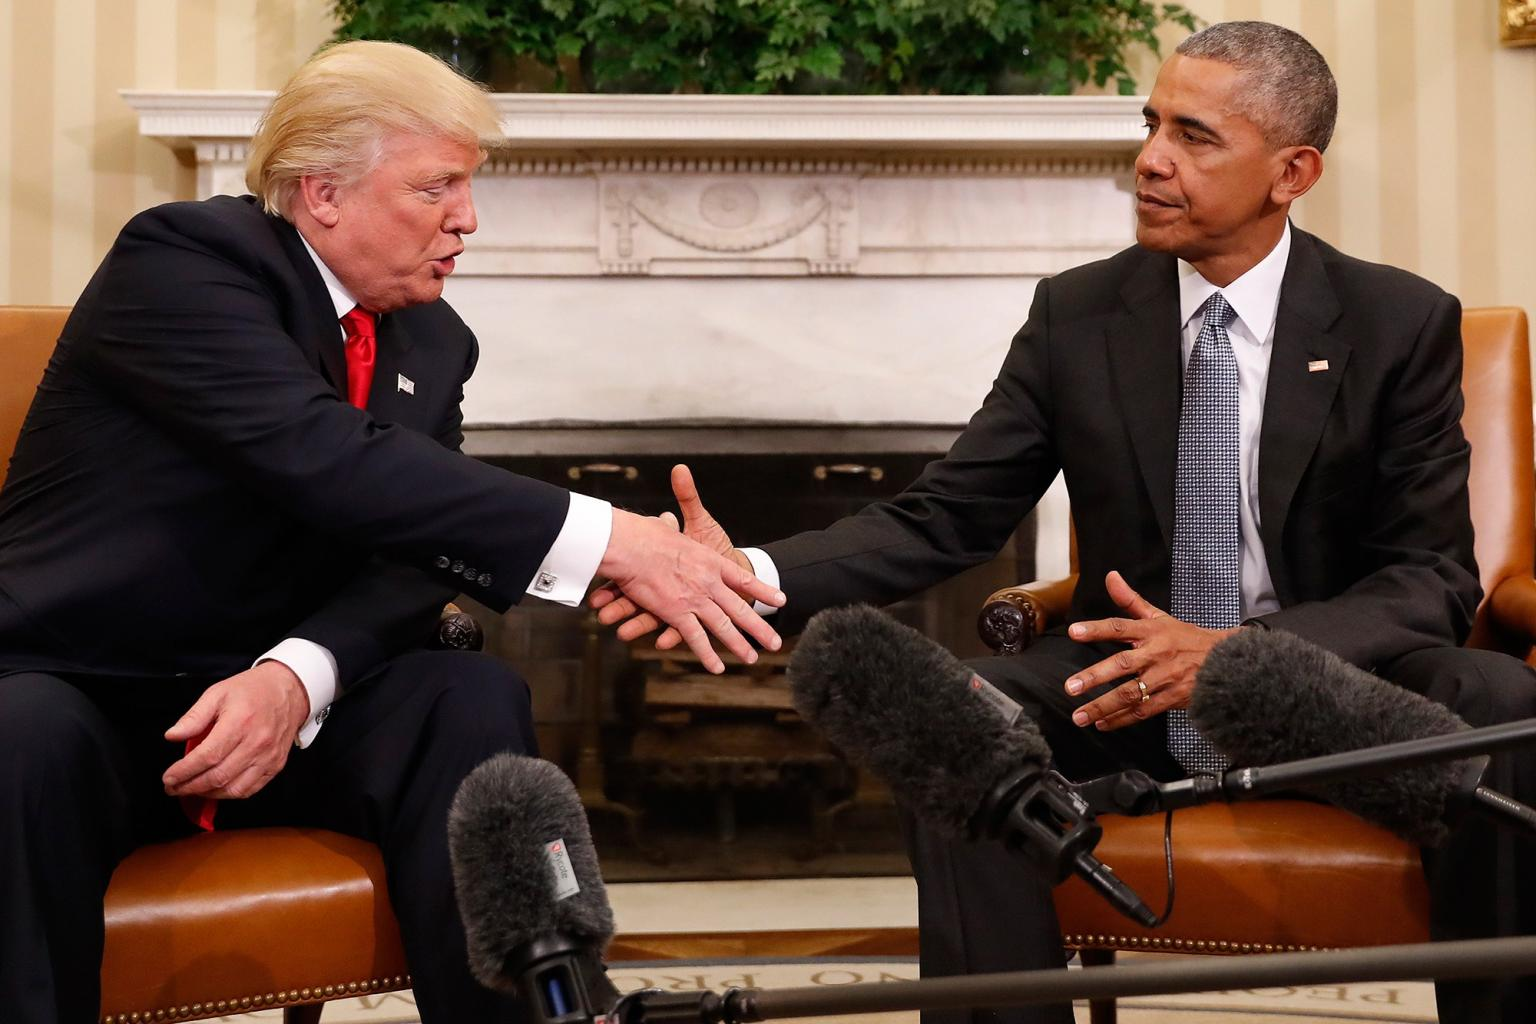 Barack Obama Says He and Donald Trump Are    Sort of Opposites